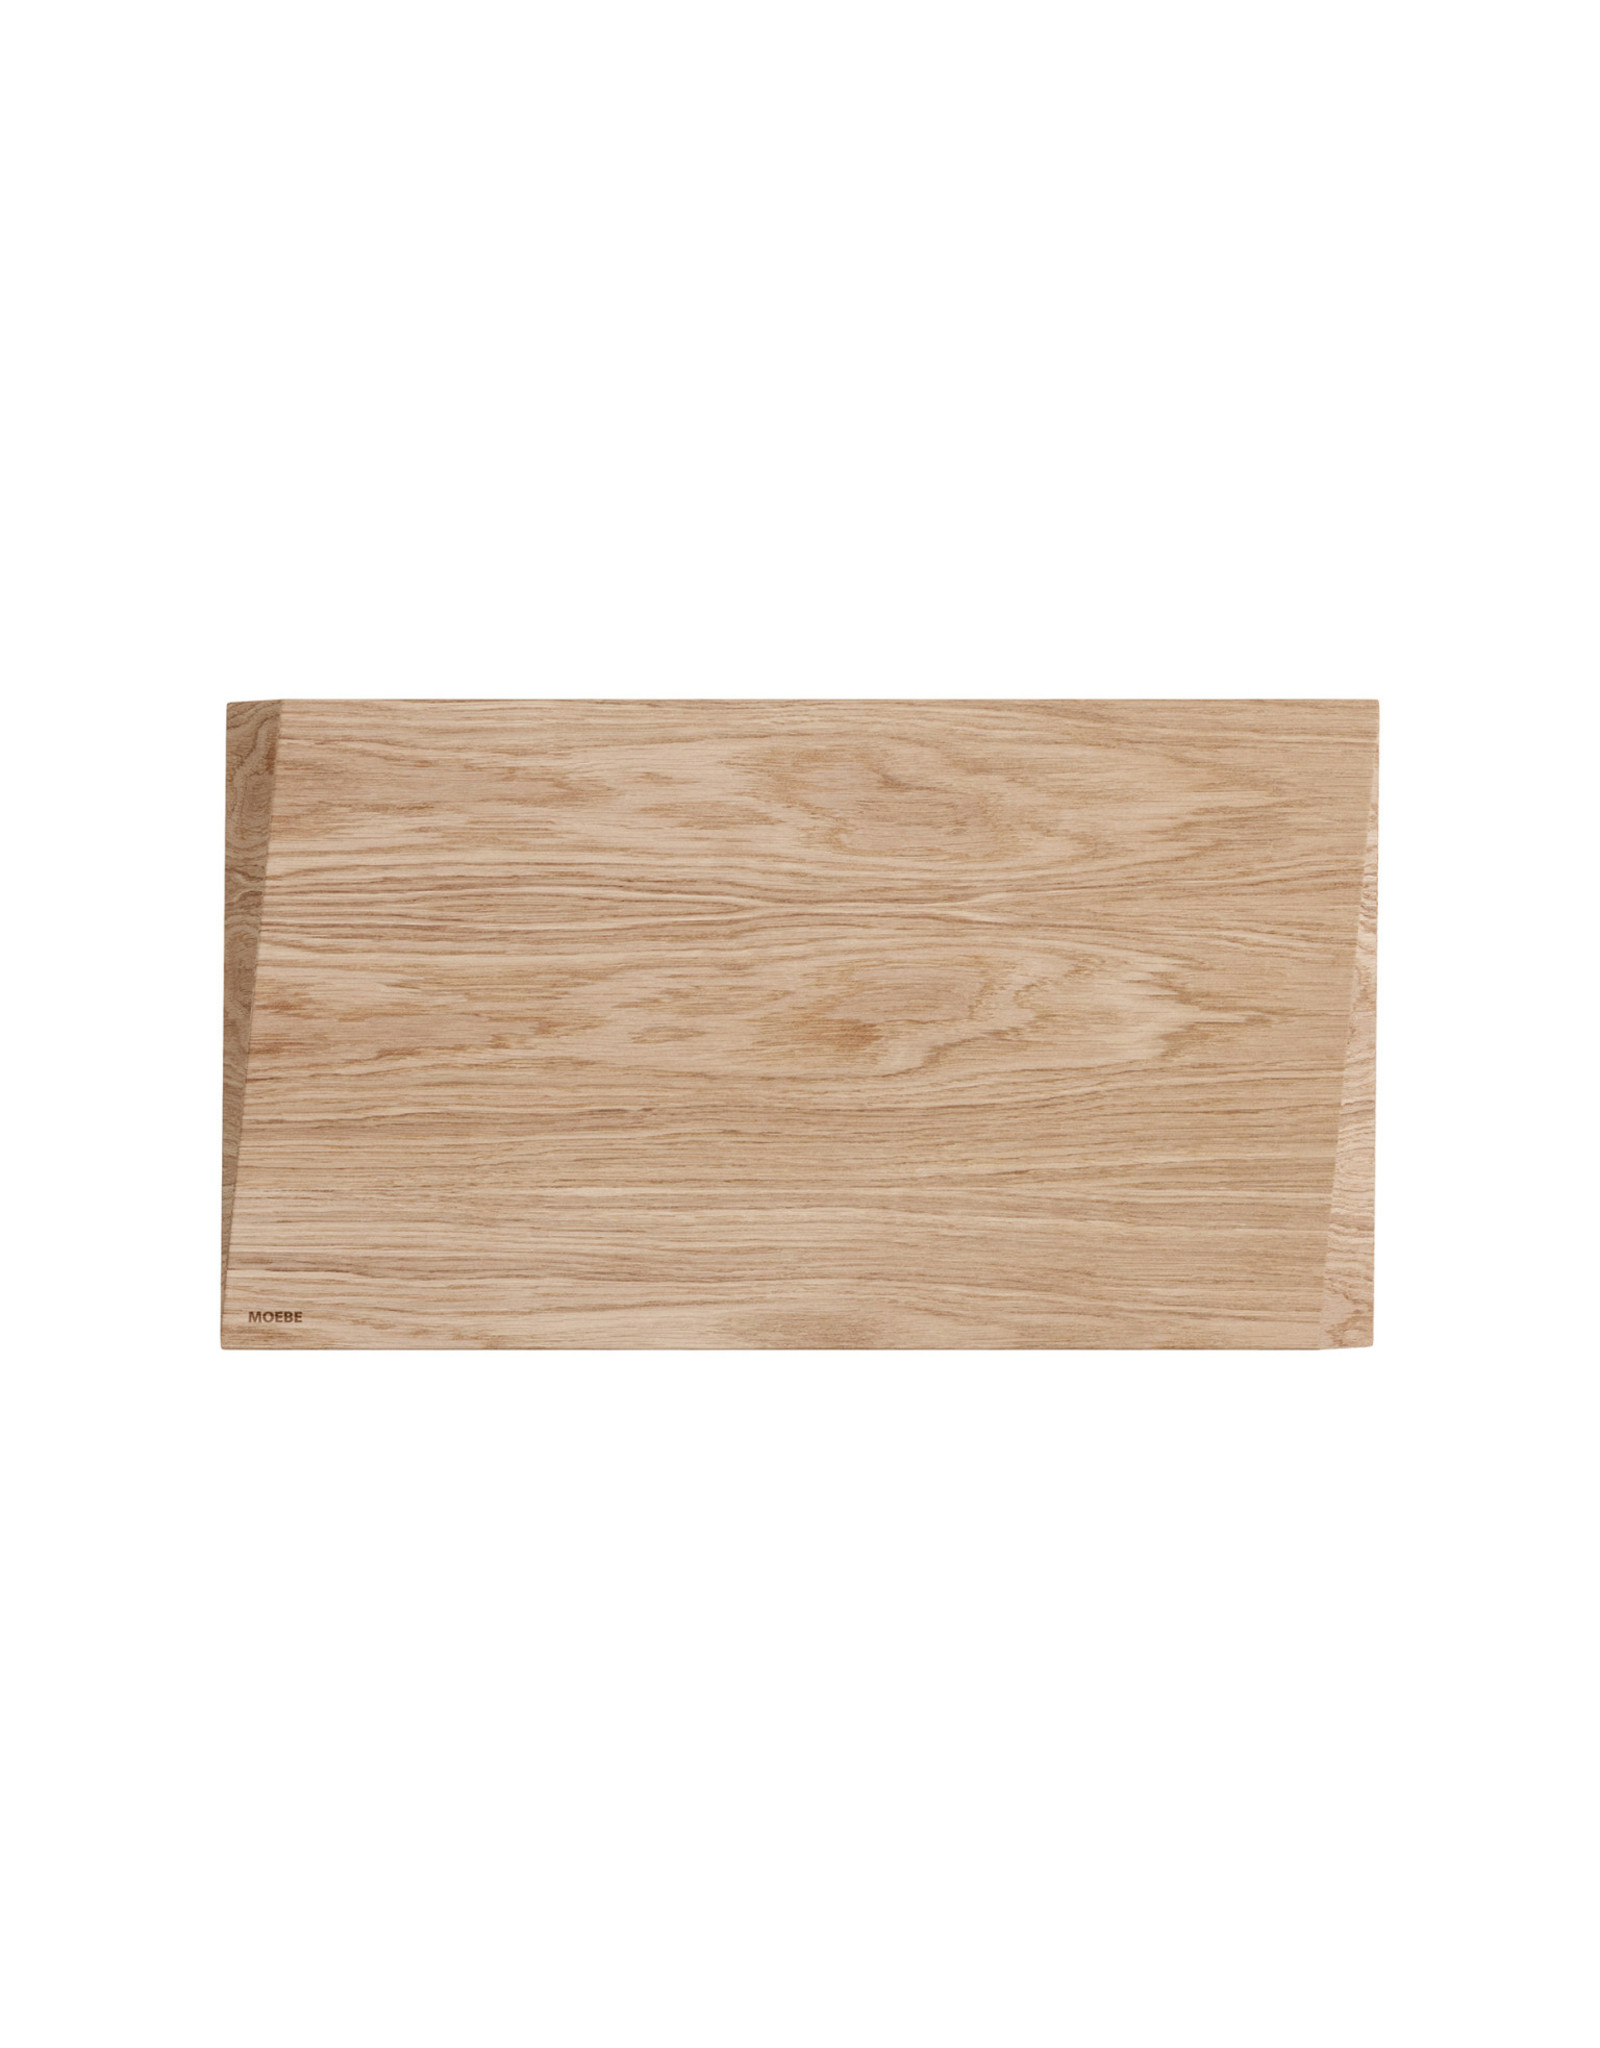 Moebe Moebe Cutting Board Oak Large